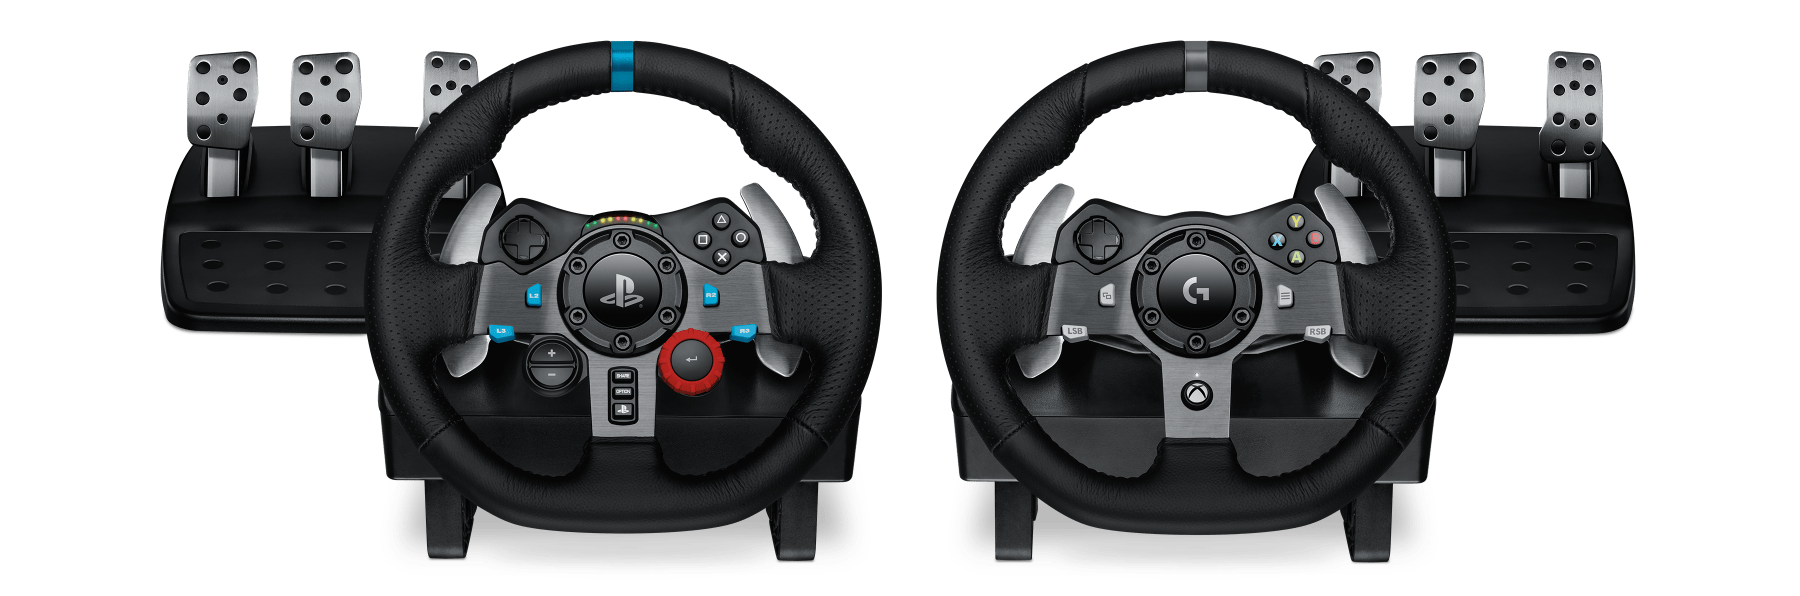 Logitech G920 G29 Driving Force Steering Wheels Pedals